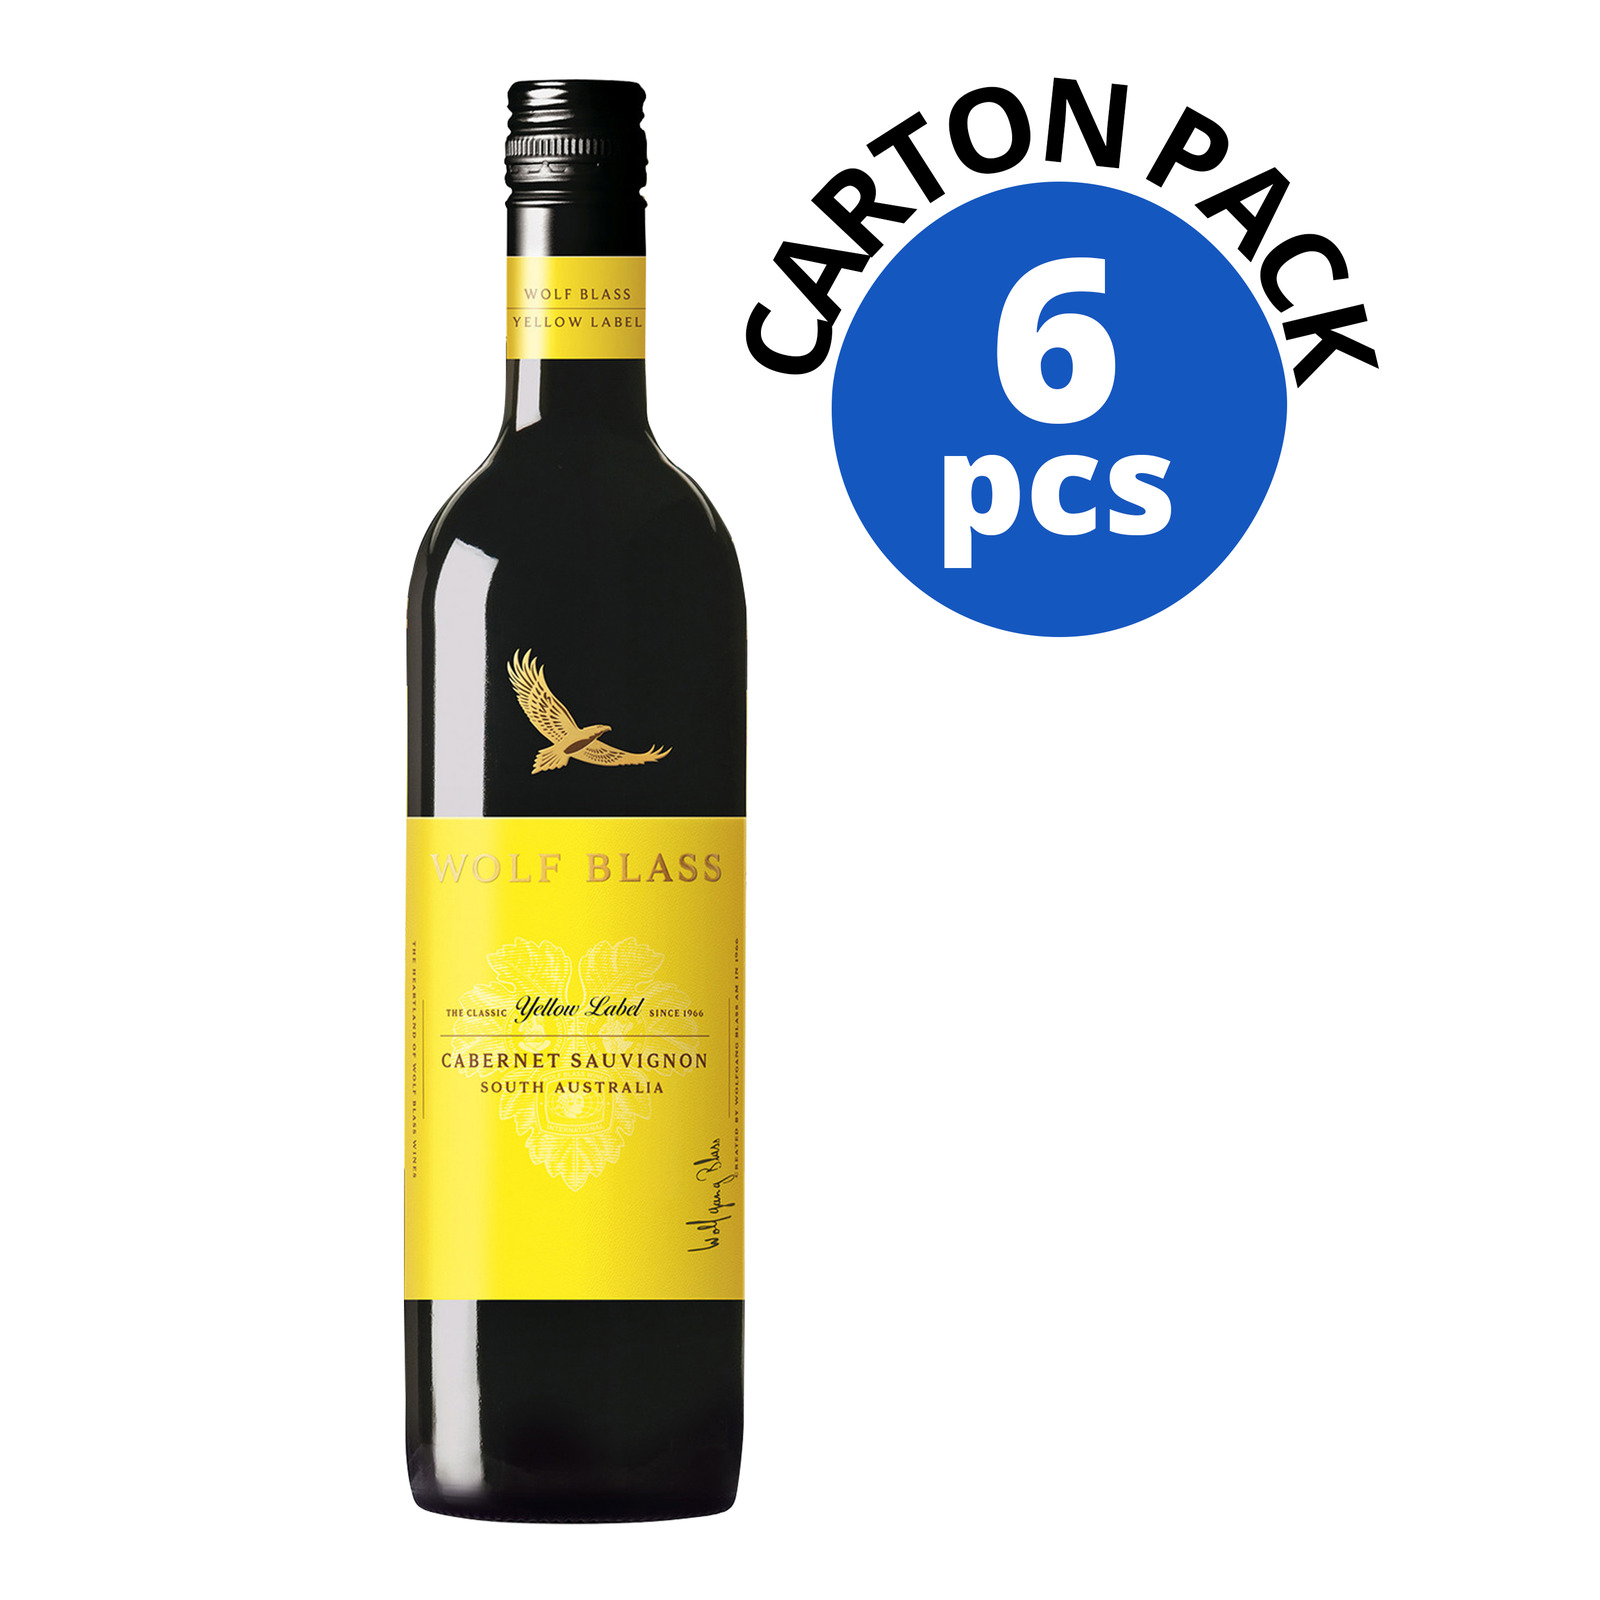 Wolf Blass Yellow Label Red Wine - Cabernet Sauvignon